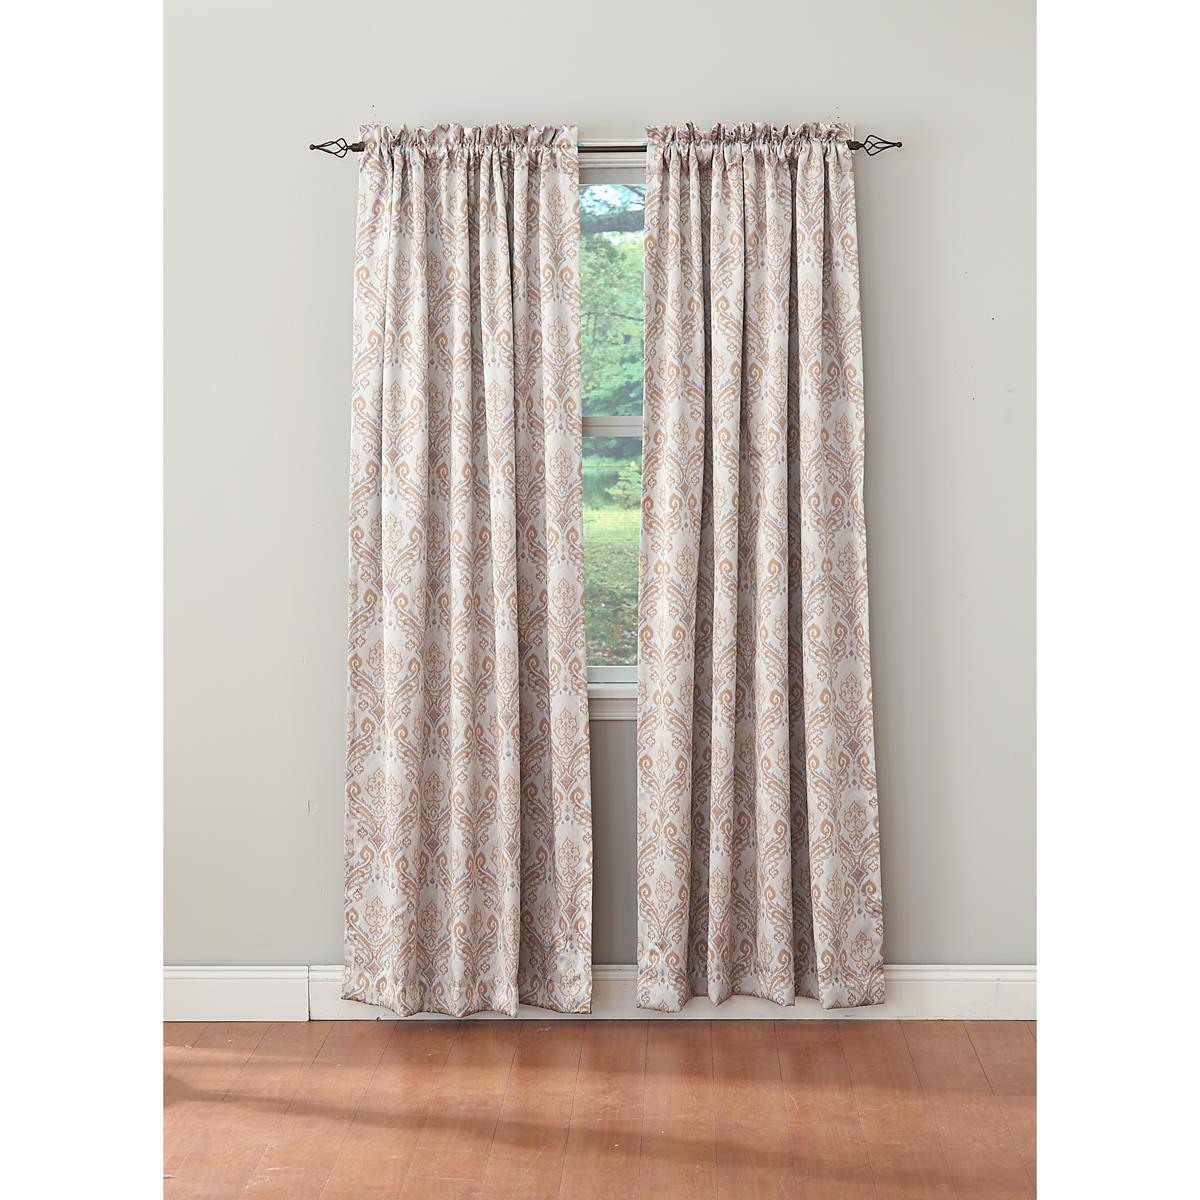 Damask Blackout Rod Pocket Curtain Panel Intended For Rod Pocket Curtain Panels (View 14 of 20)